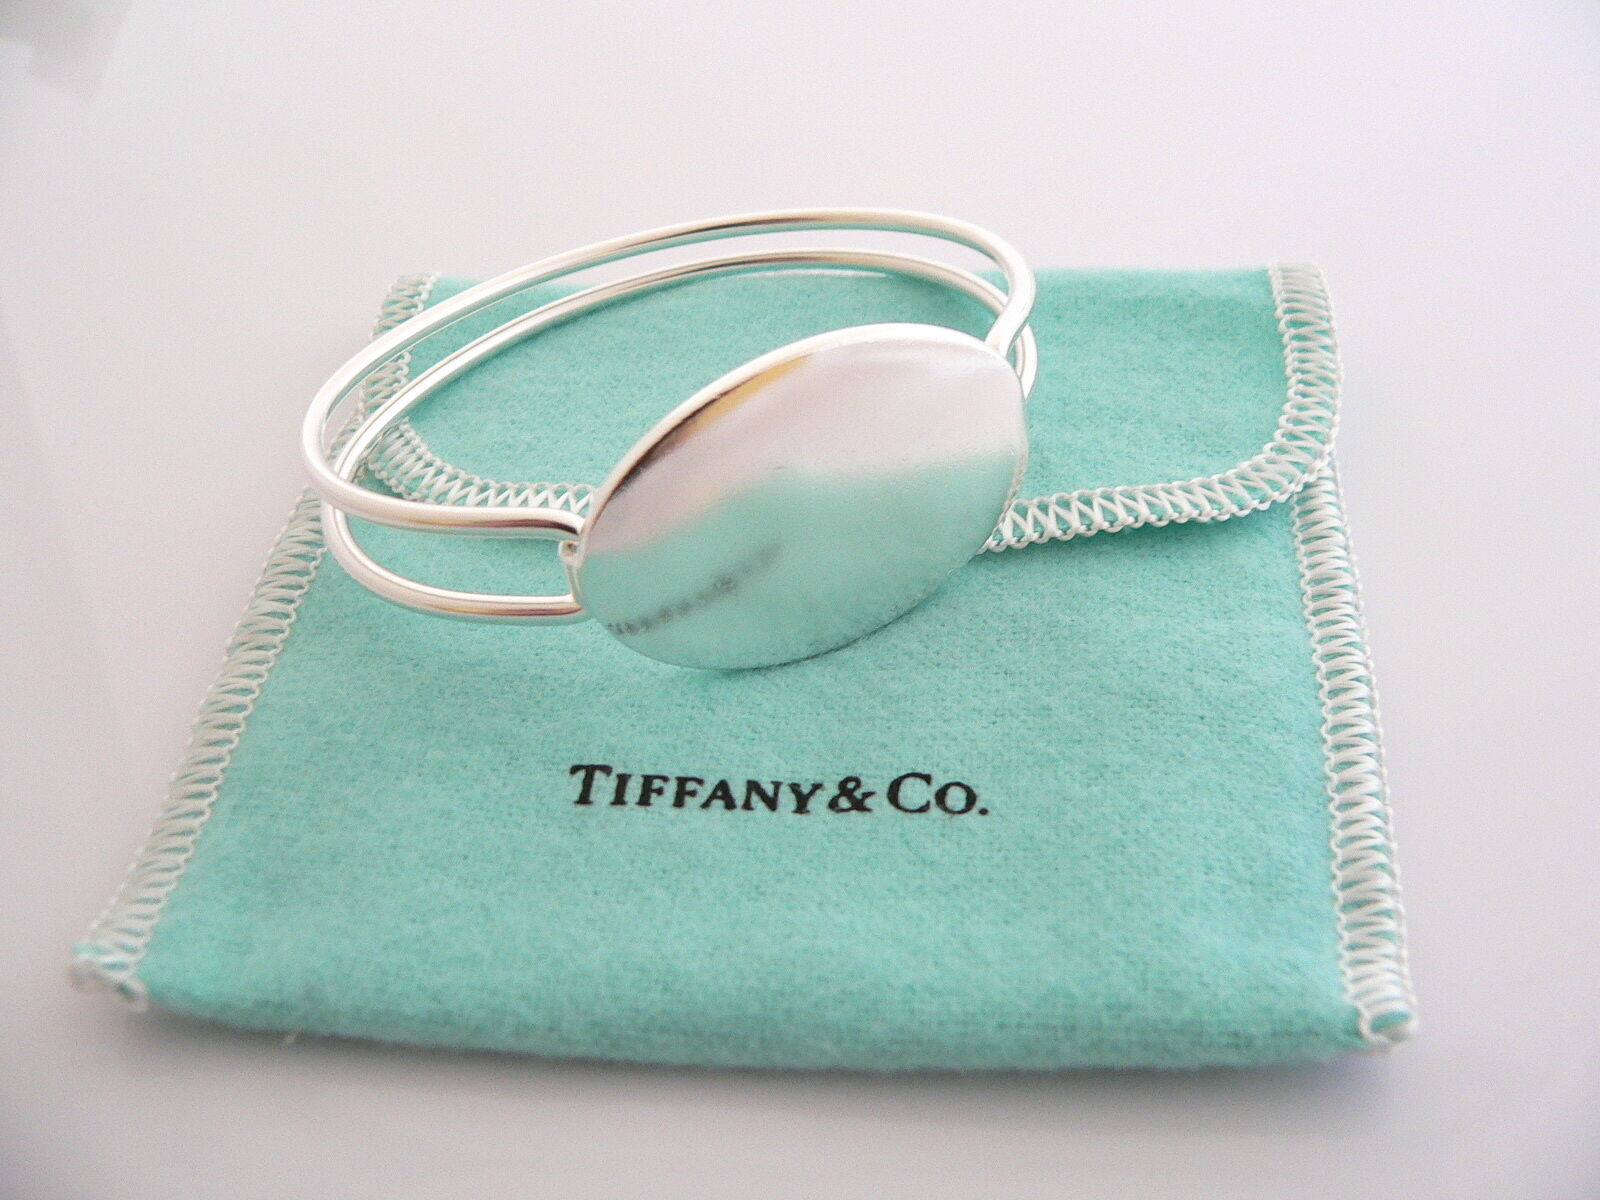 Tiffany & Co Silver Oval Double Wire Bangle ID Bracelet Gift Pouch Love Pouch